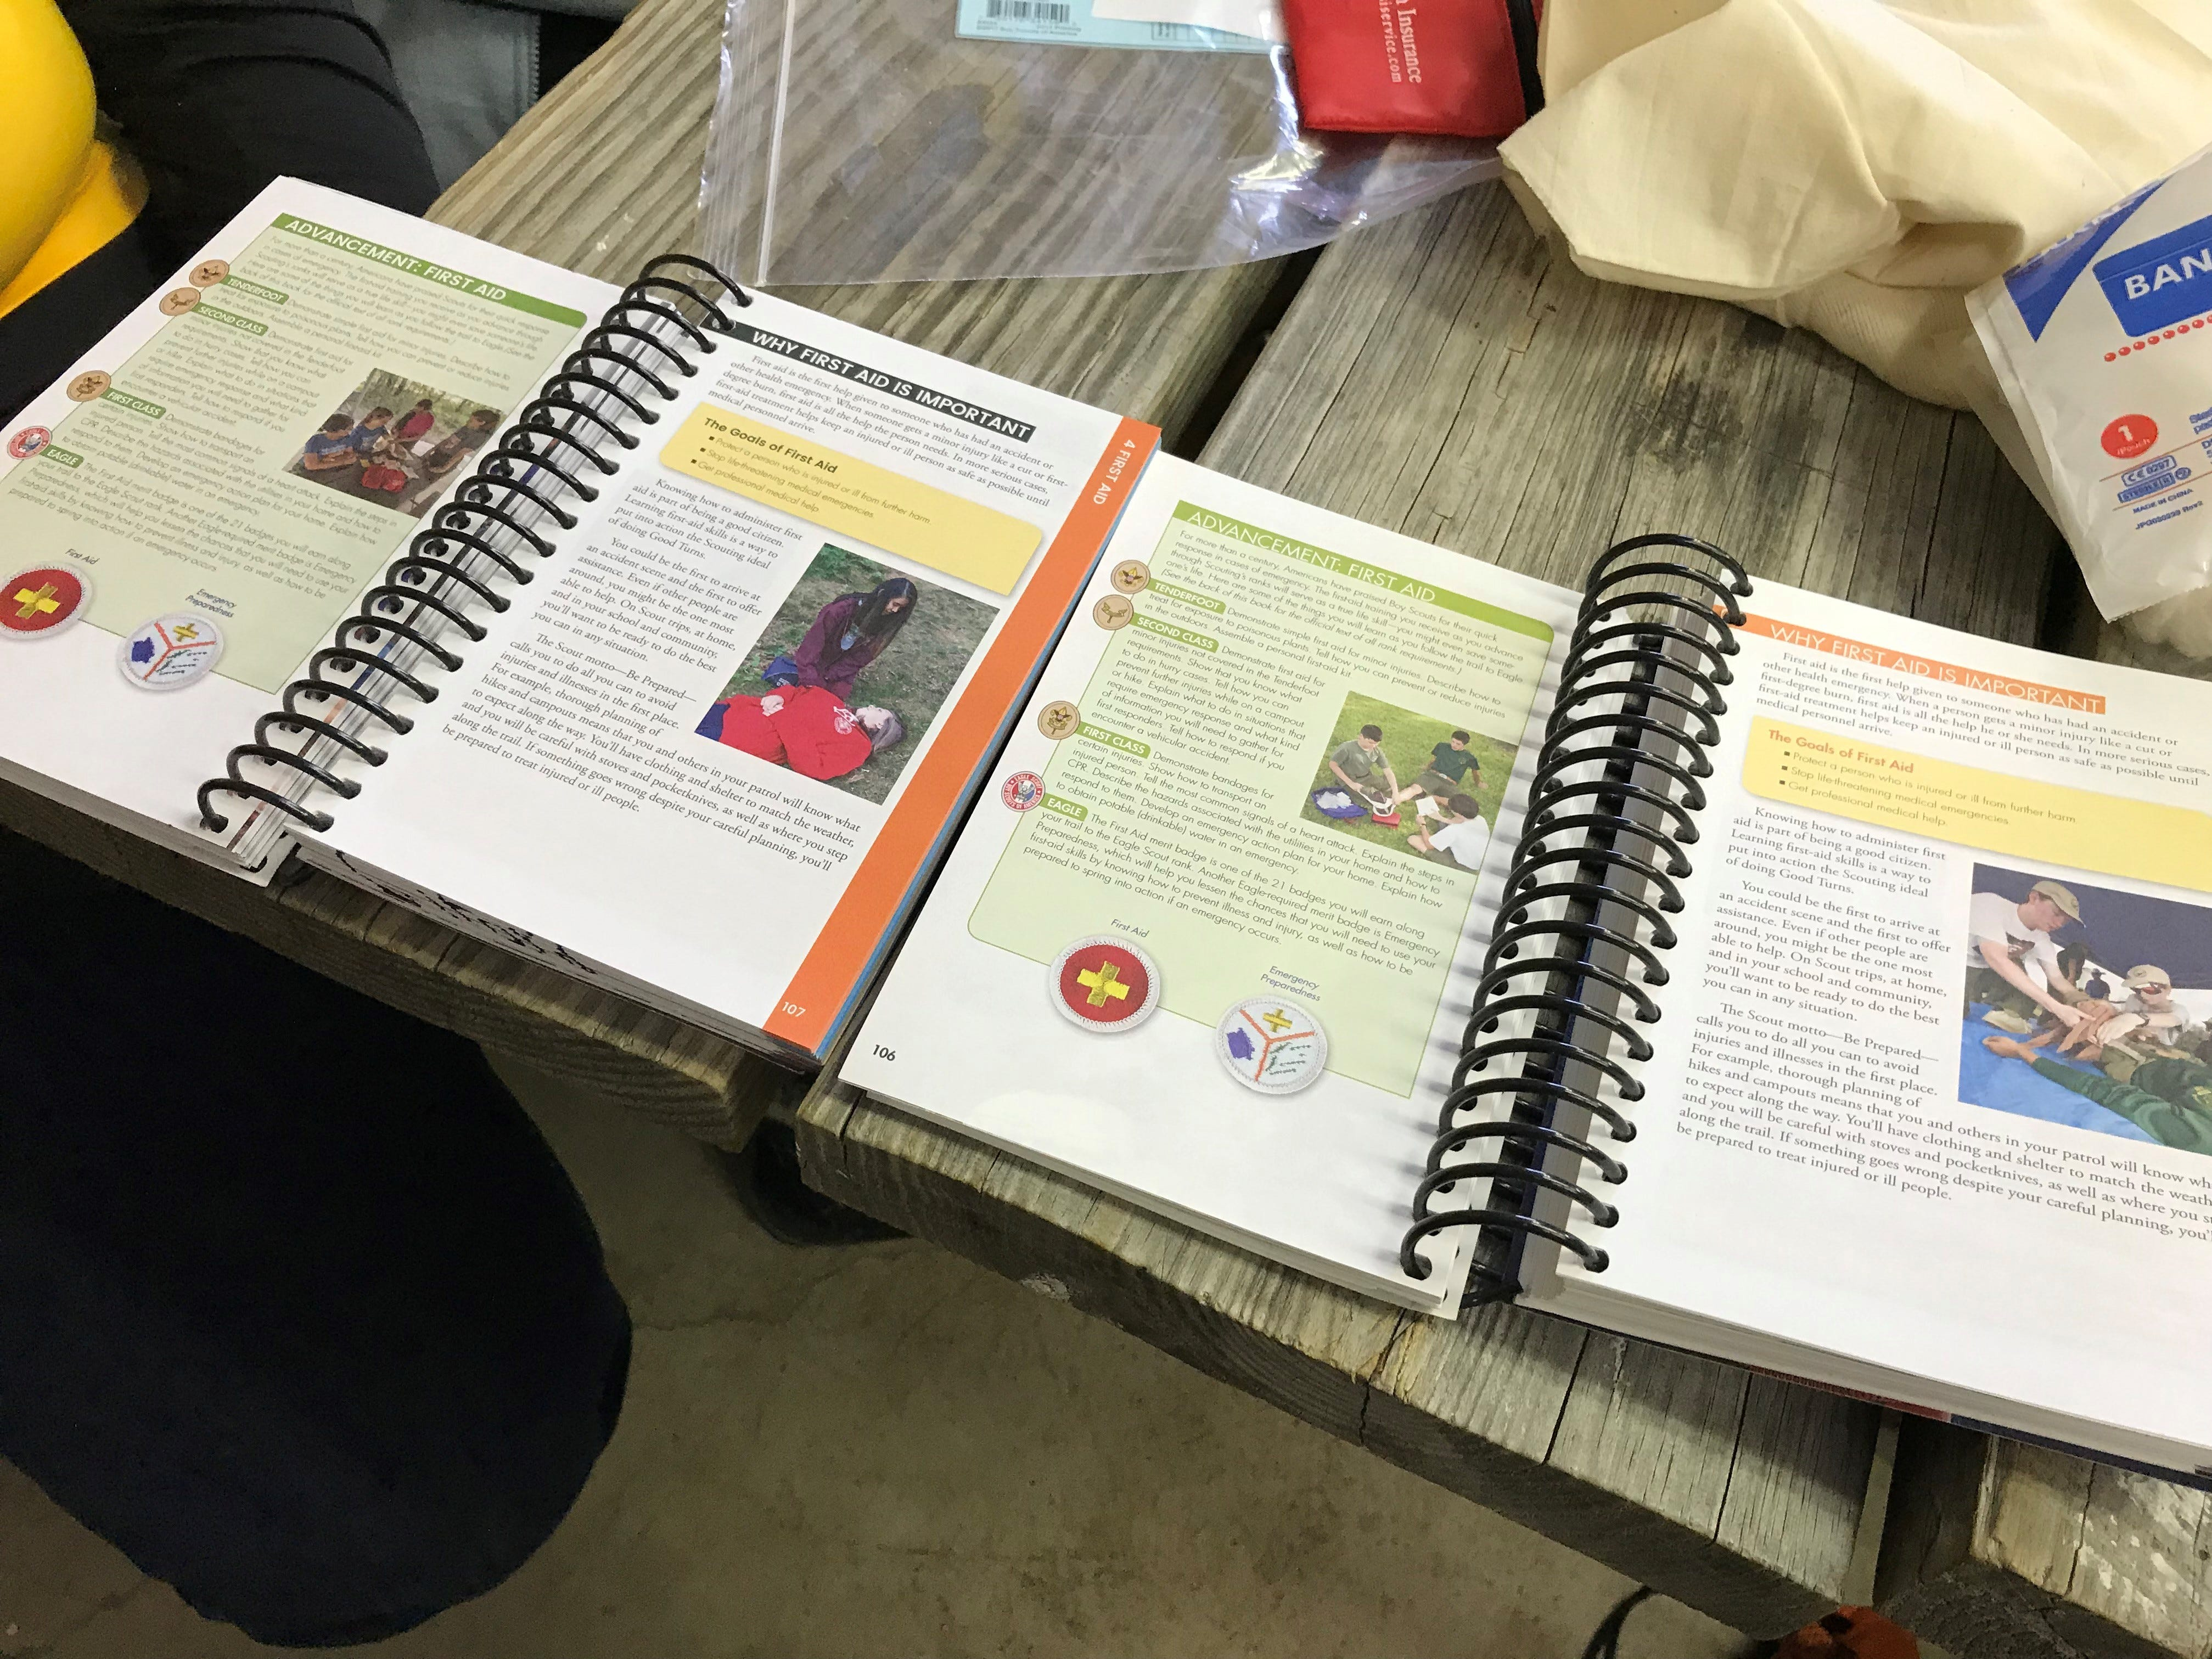 The scouting handbooks side by side. The book on the left is the revamped Scouts BSA handbook that features young women learning the same skills as the young men in the former Boy Scouts branch of the Boy Scouts of America. The book on the right is the older handbook which only featured young men.